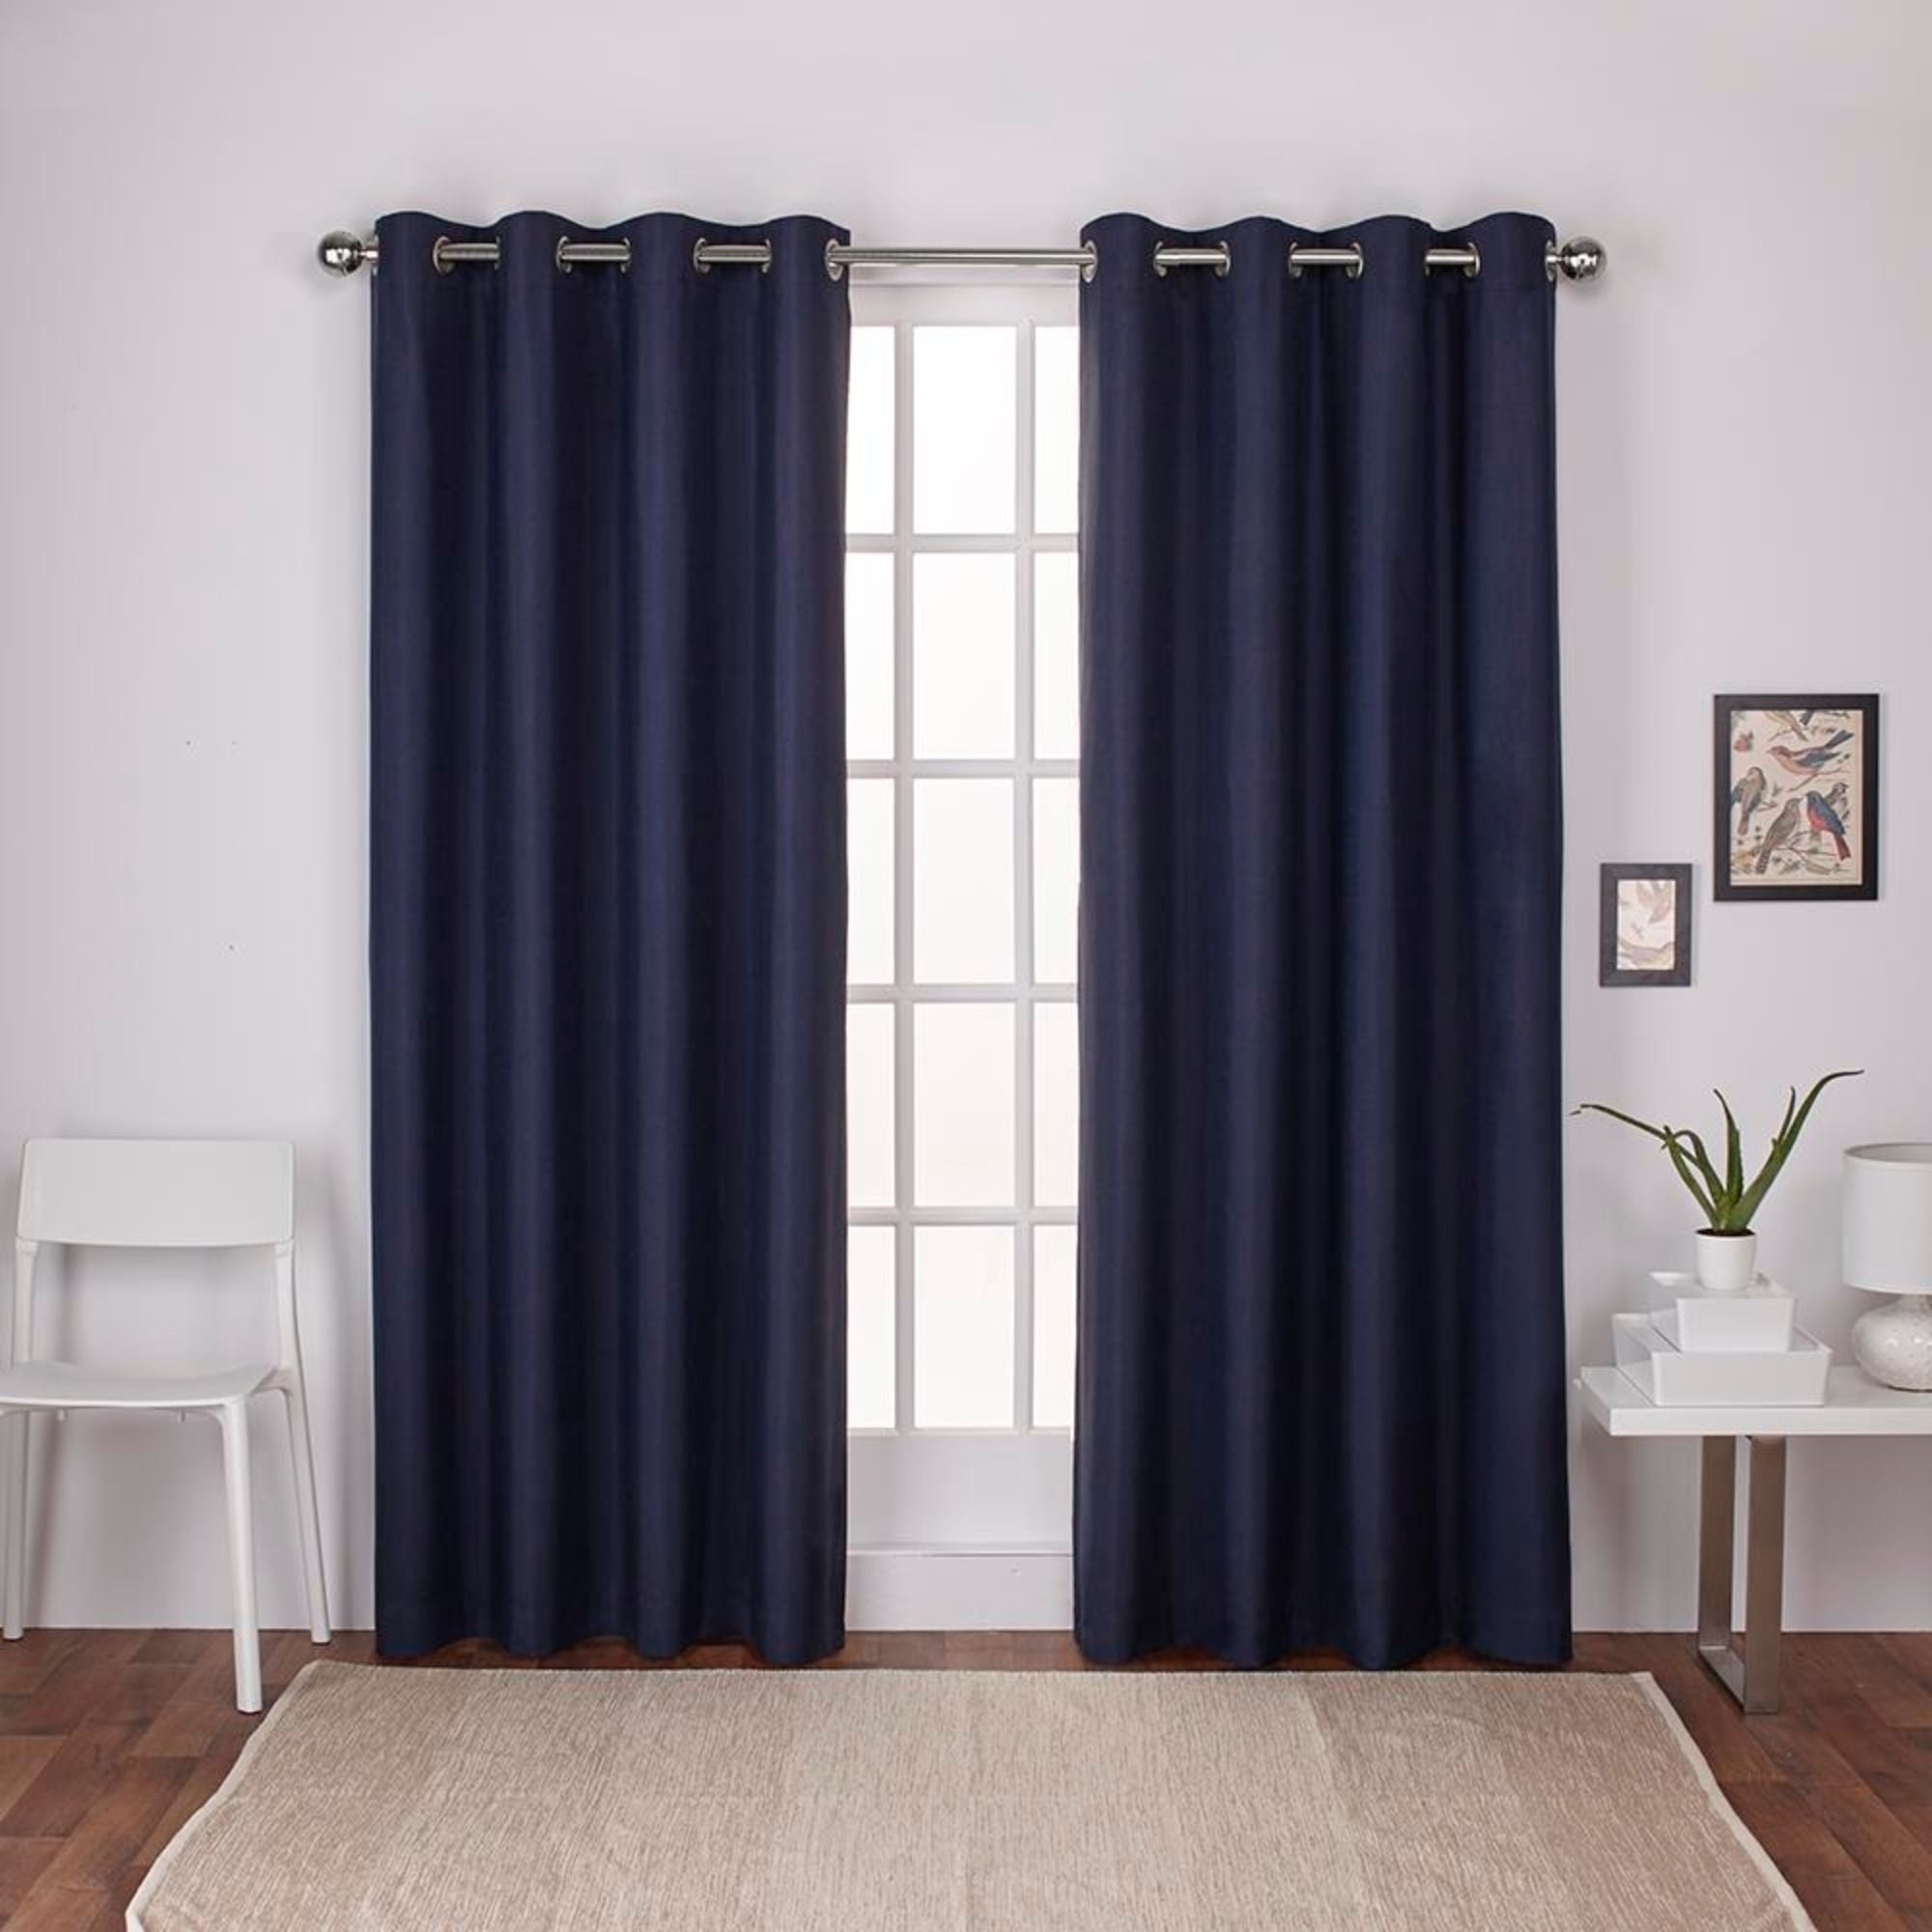 Shop Strick & Bolton Lewitt Thermal Textured Linen Grommet With Thermal Textured Linen Grommet Top Curtain Panel Pairs (View 8 of 30)